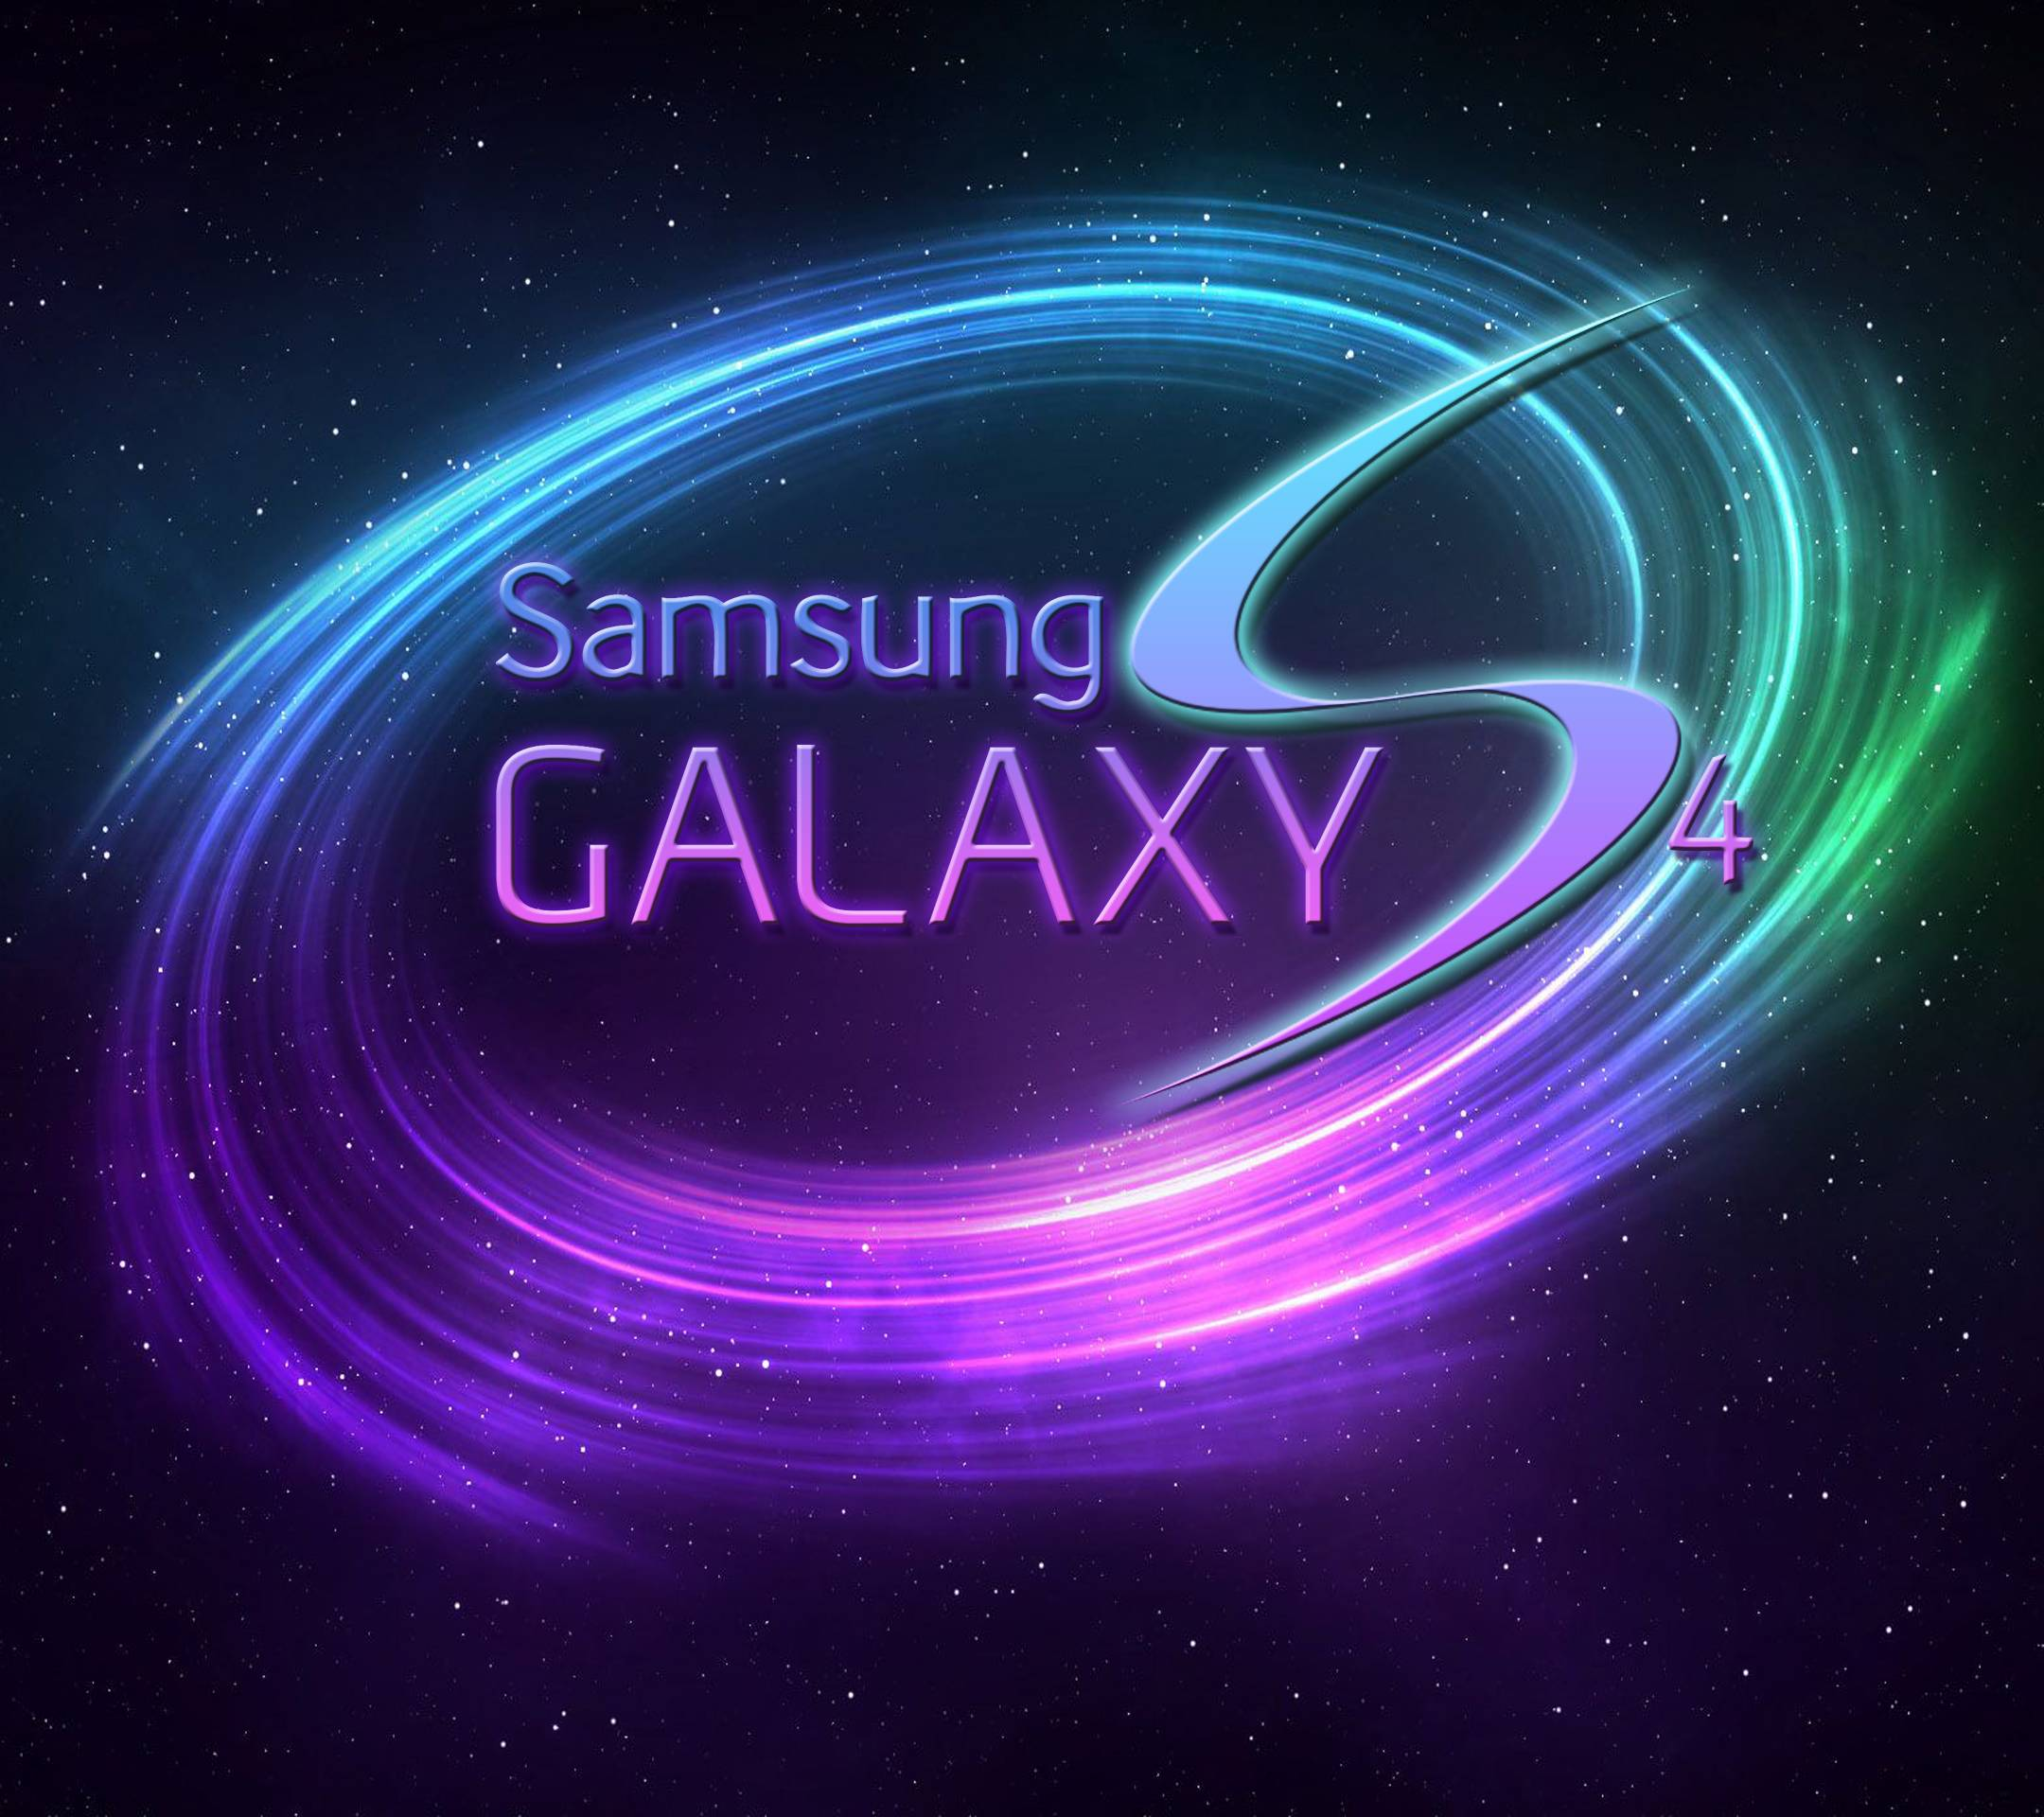 Samsung Galaxy Y Hd Love Wallpaper : Samsung Logo Wallpapers - Wallpaper cave